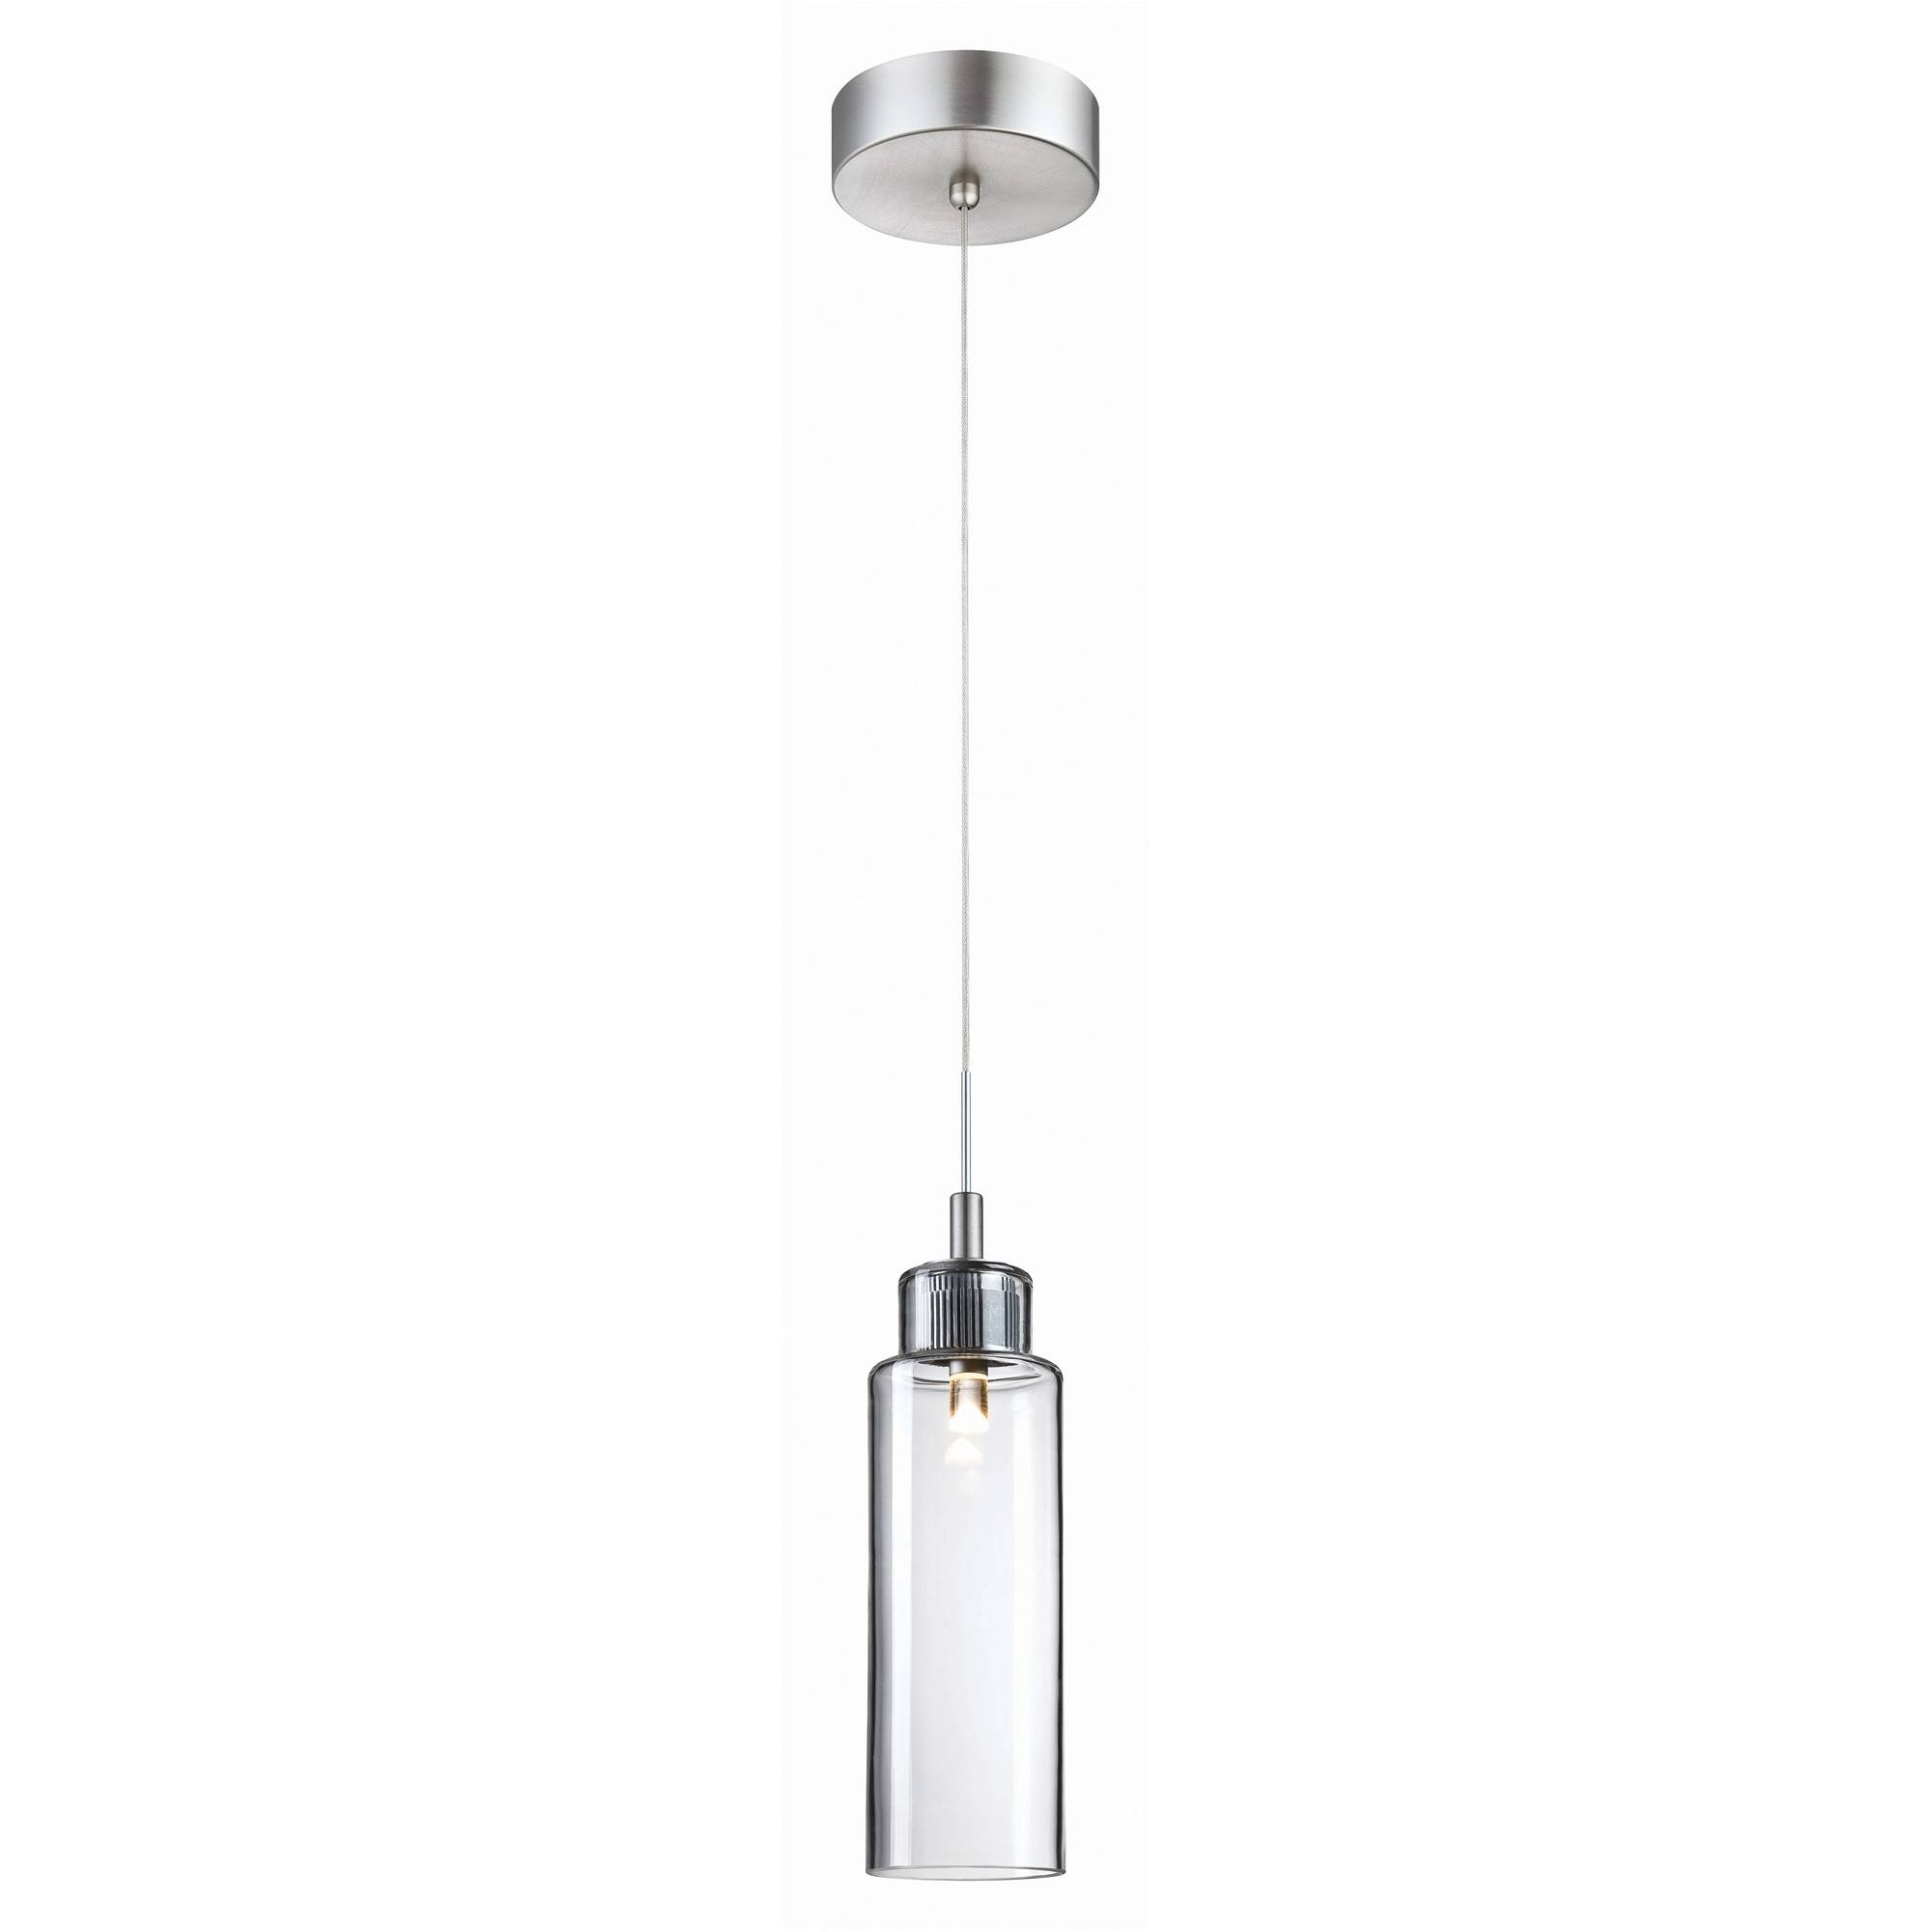 Long Pendant Light With Concept Hd Images 31909   Kengire Within Long Pendant Lighting (View 13 of 15)